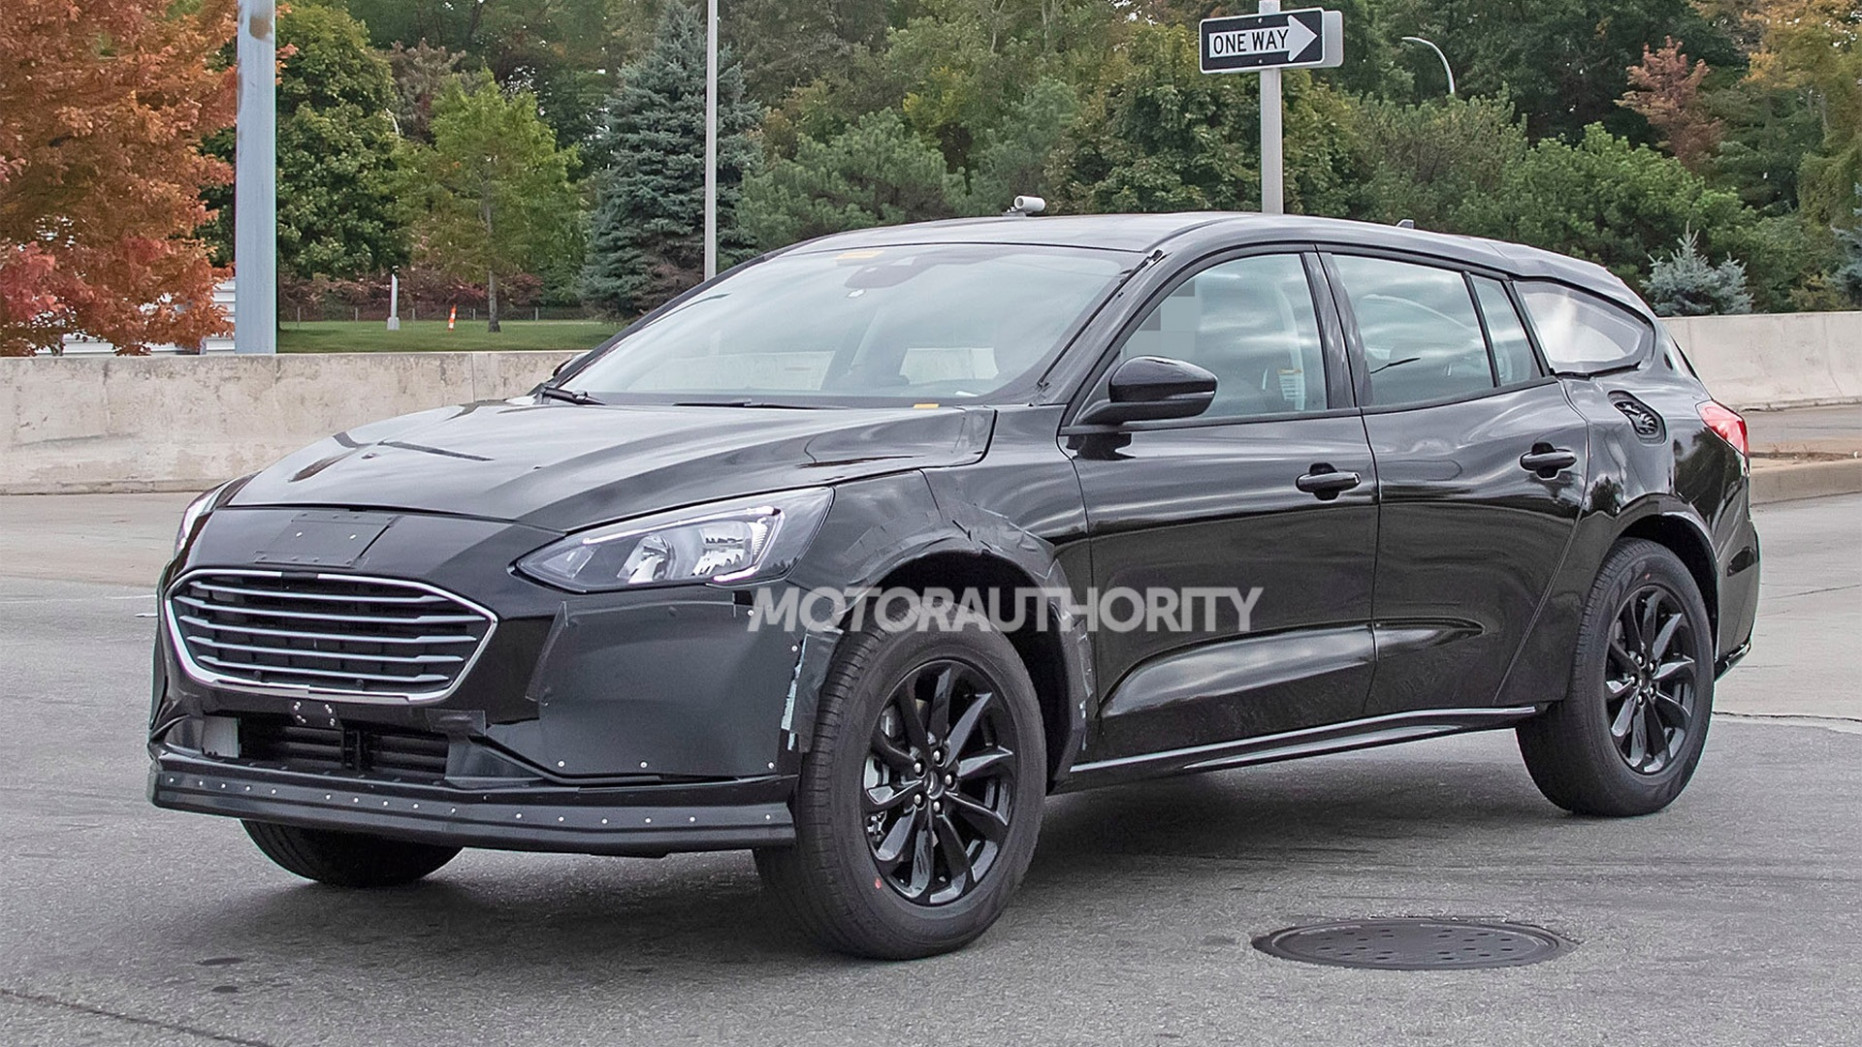 New Model and Performance 2022 The Spy Shots Ford Fusion